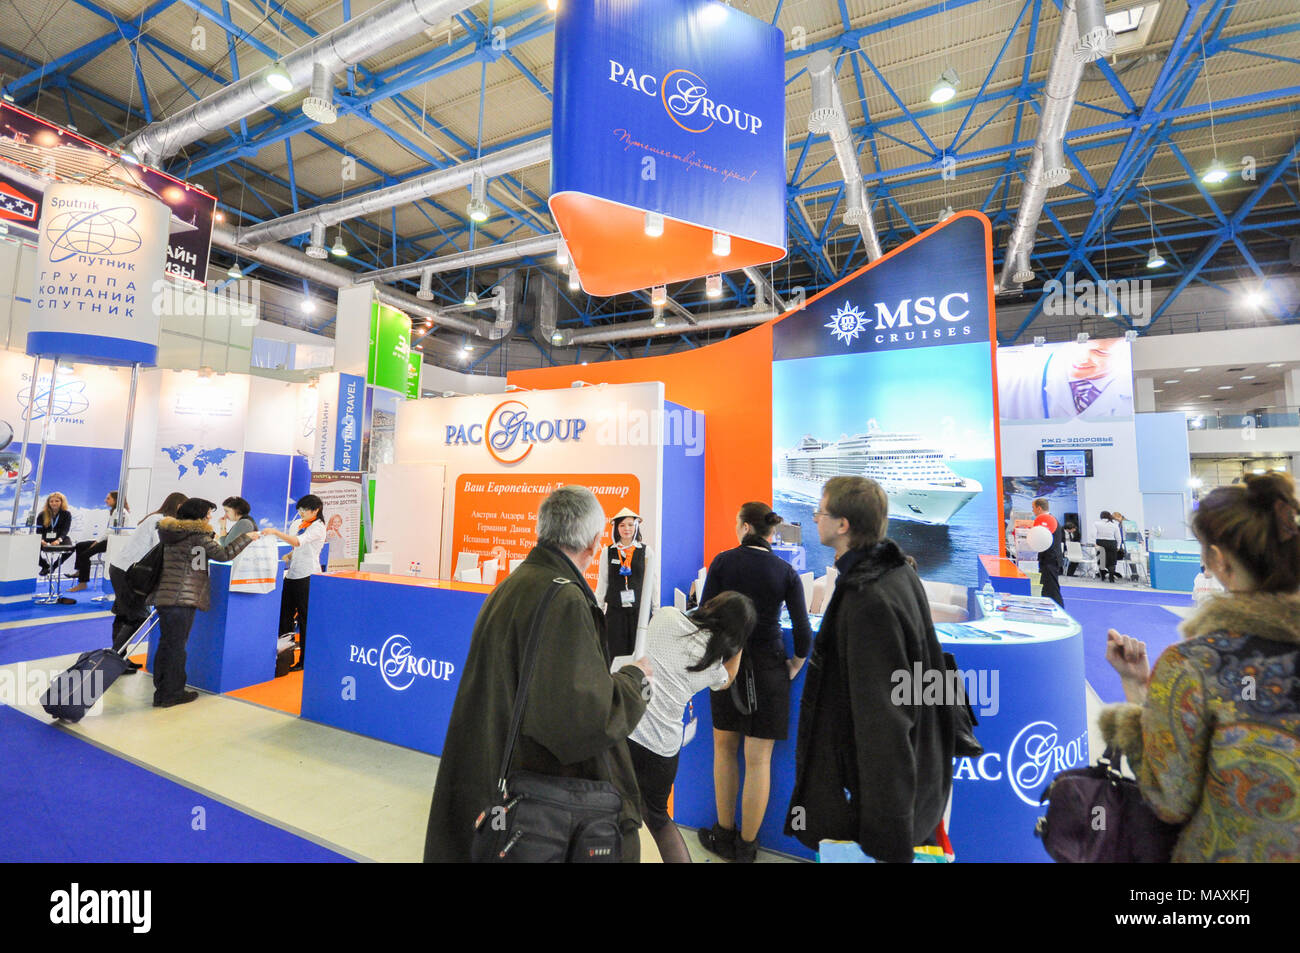 PacGroup booth at 24th Moscow International Travel & Tourism